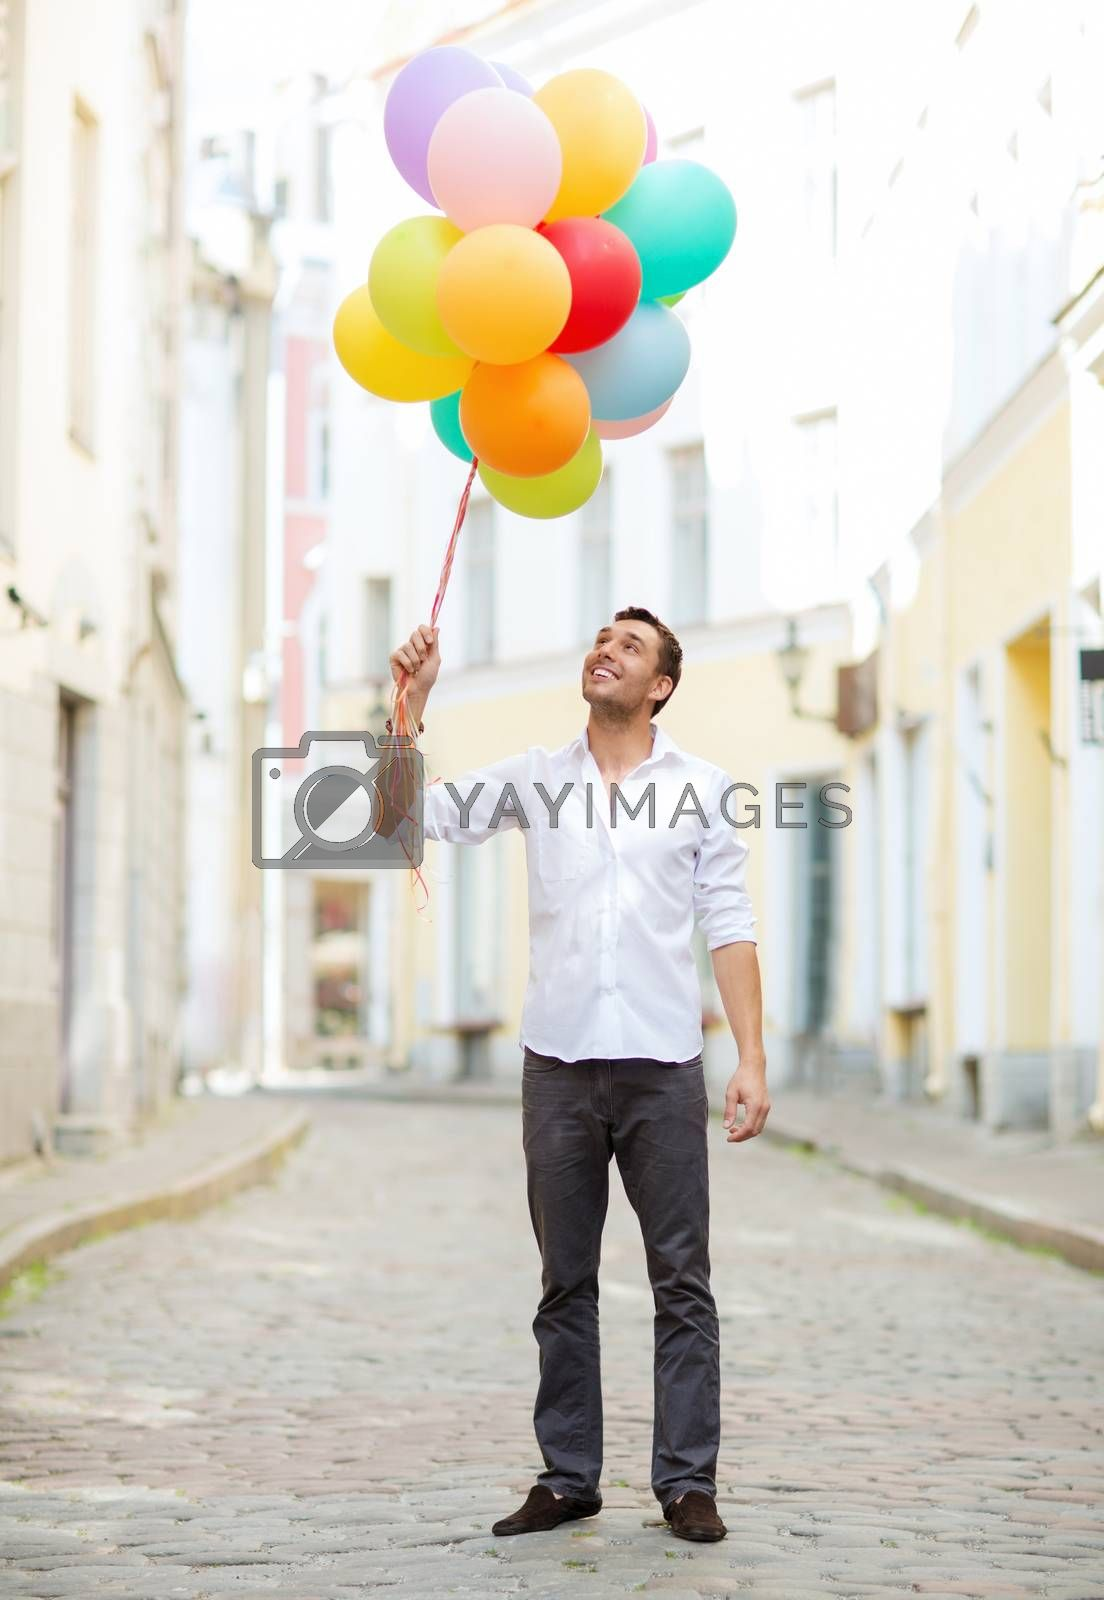 summer holidays, celebration and lifestyle concept - man with colorful balloons in the city